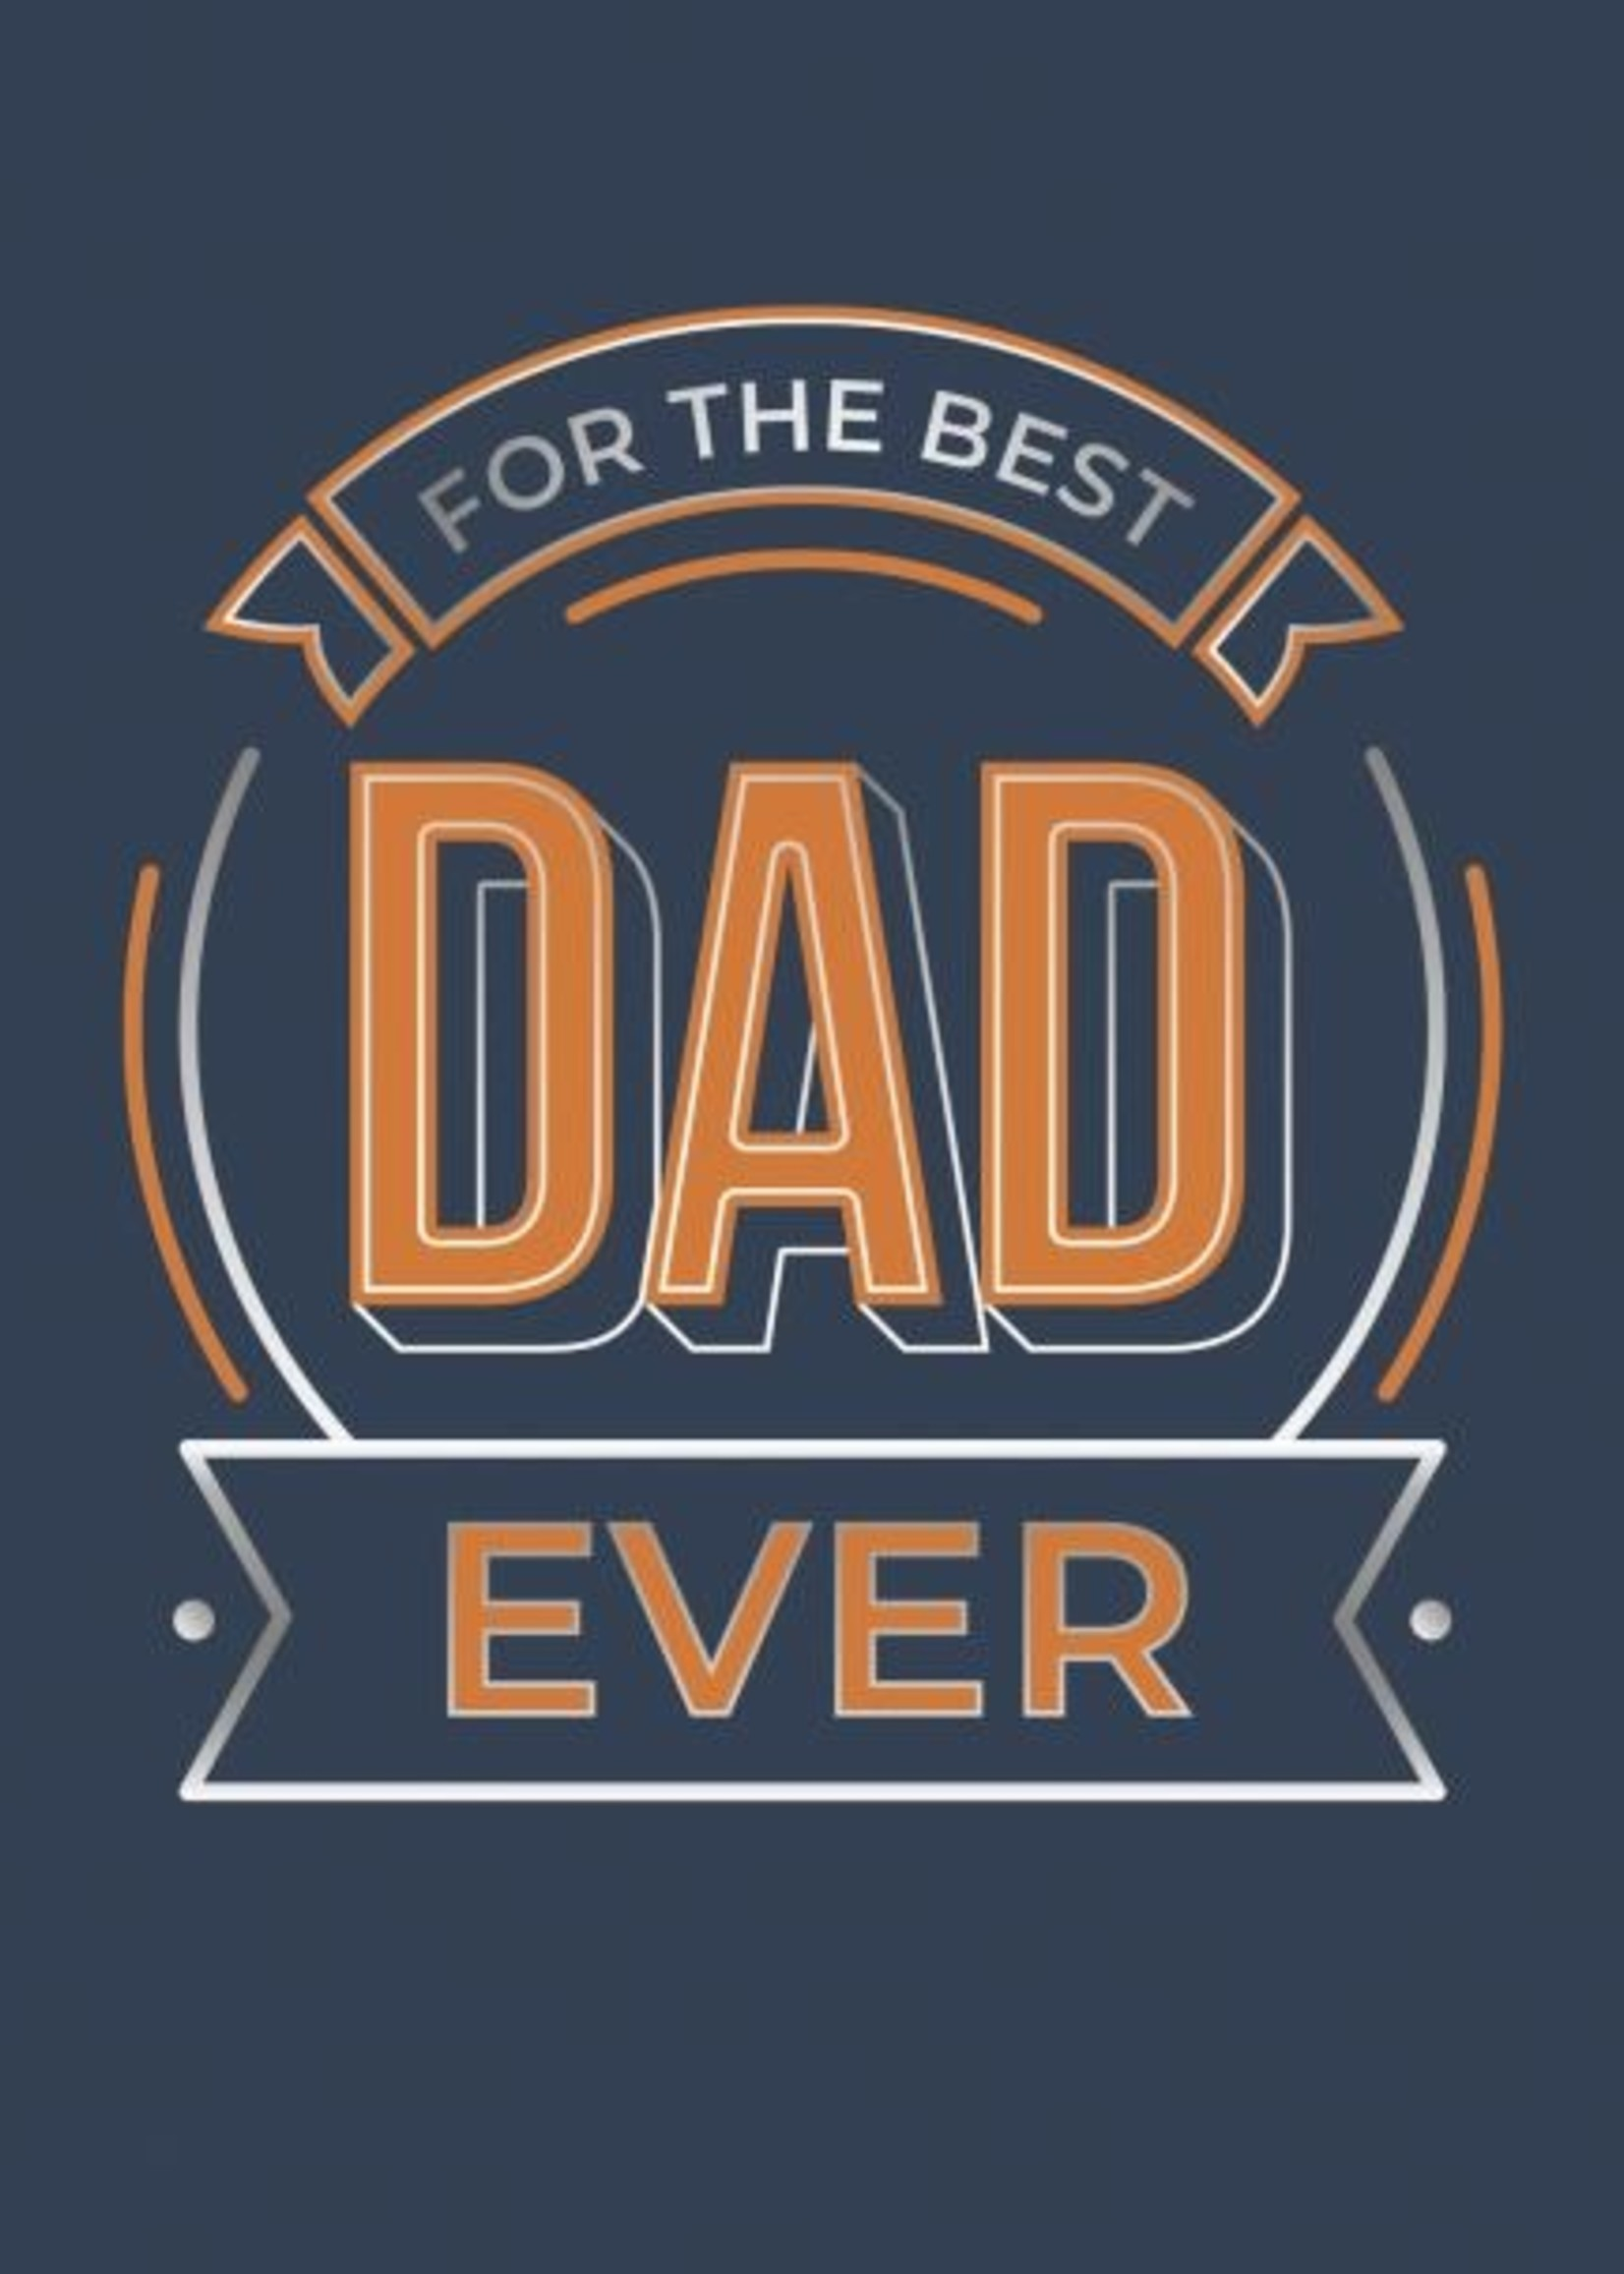 hachette book group hachette for the best dad ever book